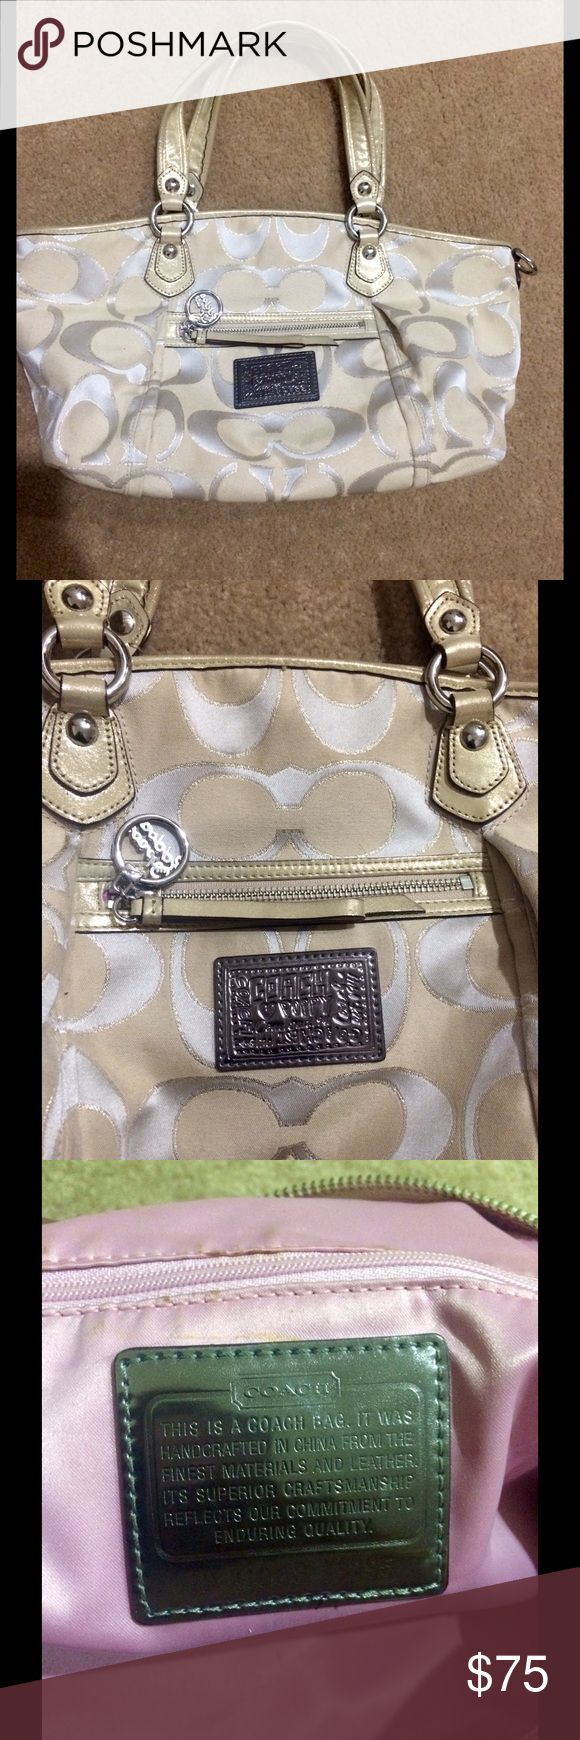 Khaki Gold Coach Poppy Purse Khaki Gold Coach Poppy Purse. Very good condition, same shape and structure from day one. Coach Accessories